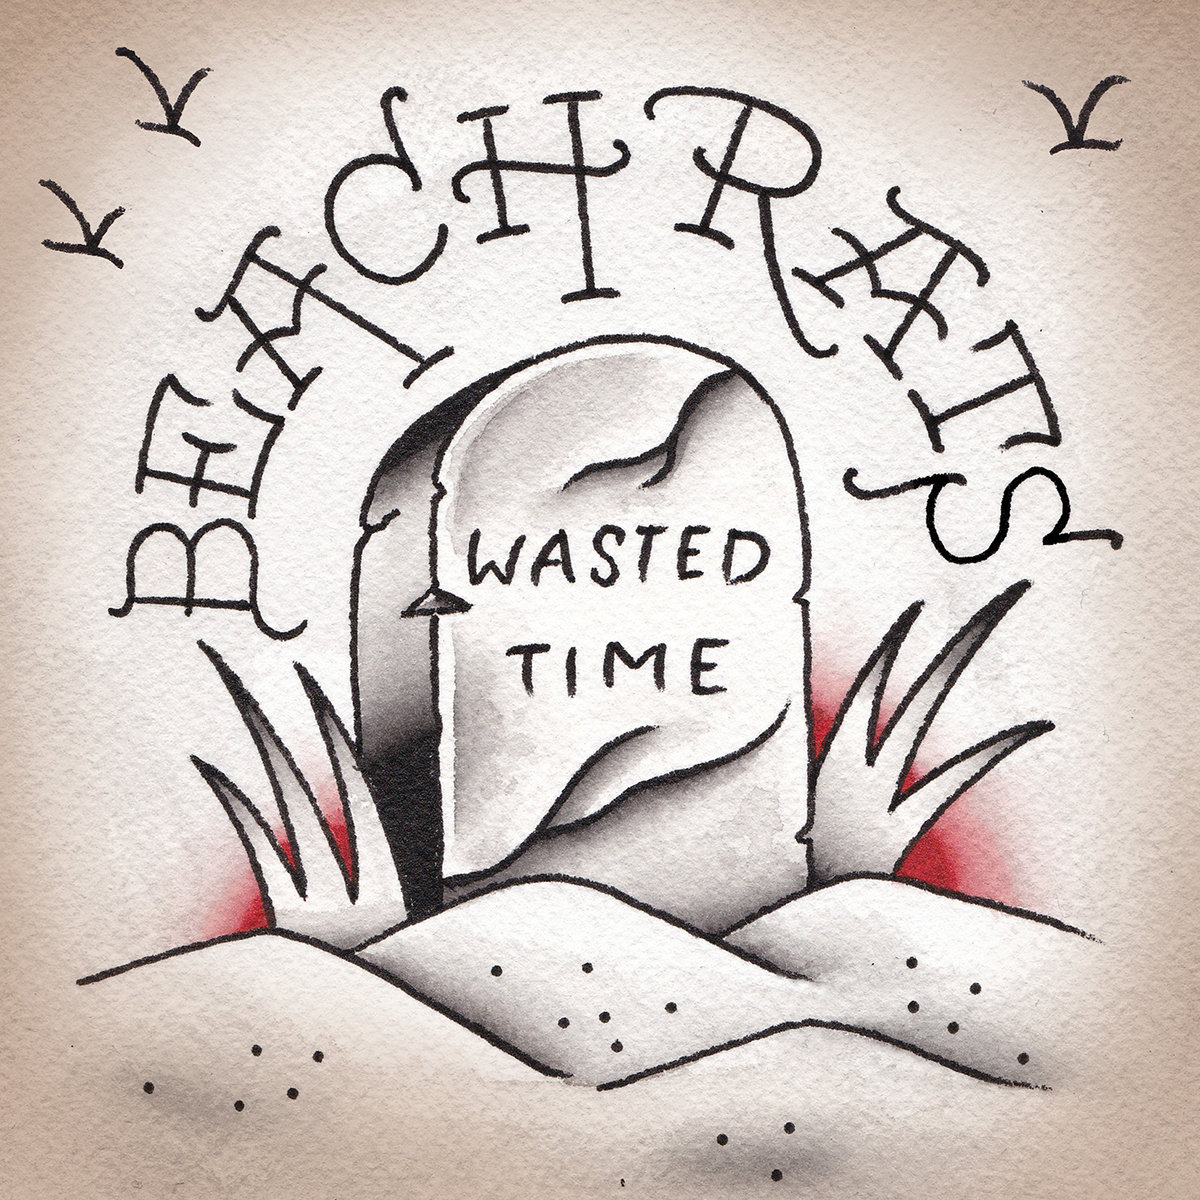 Beach Rats Wasted Time EP cover artwork art